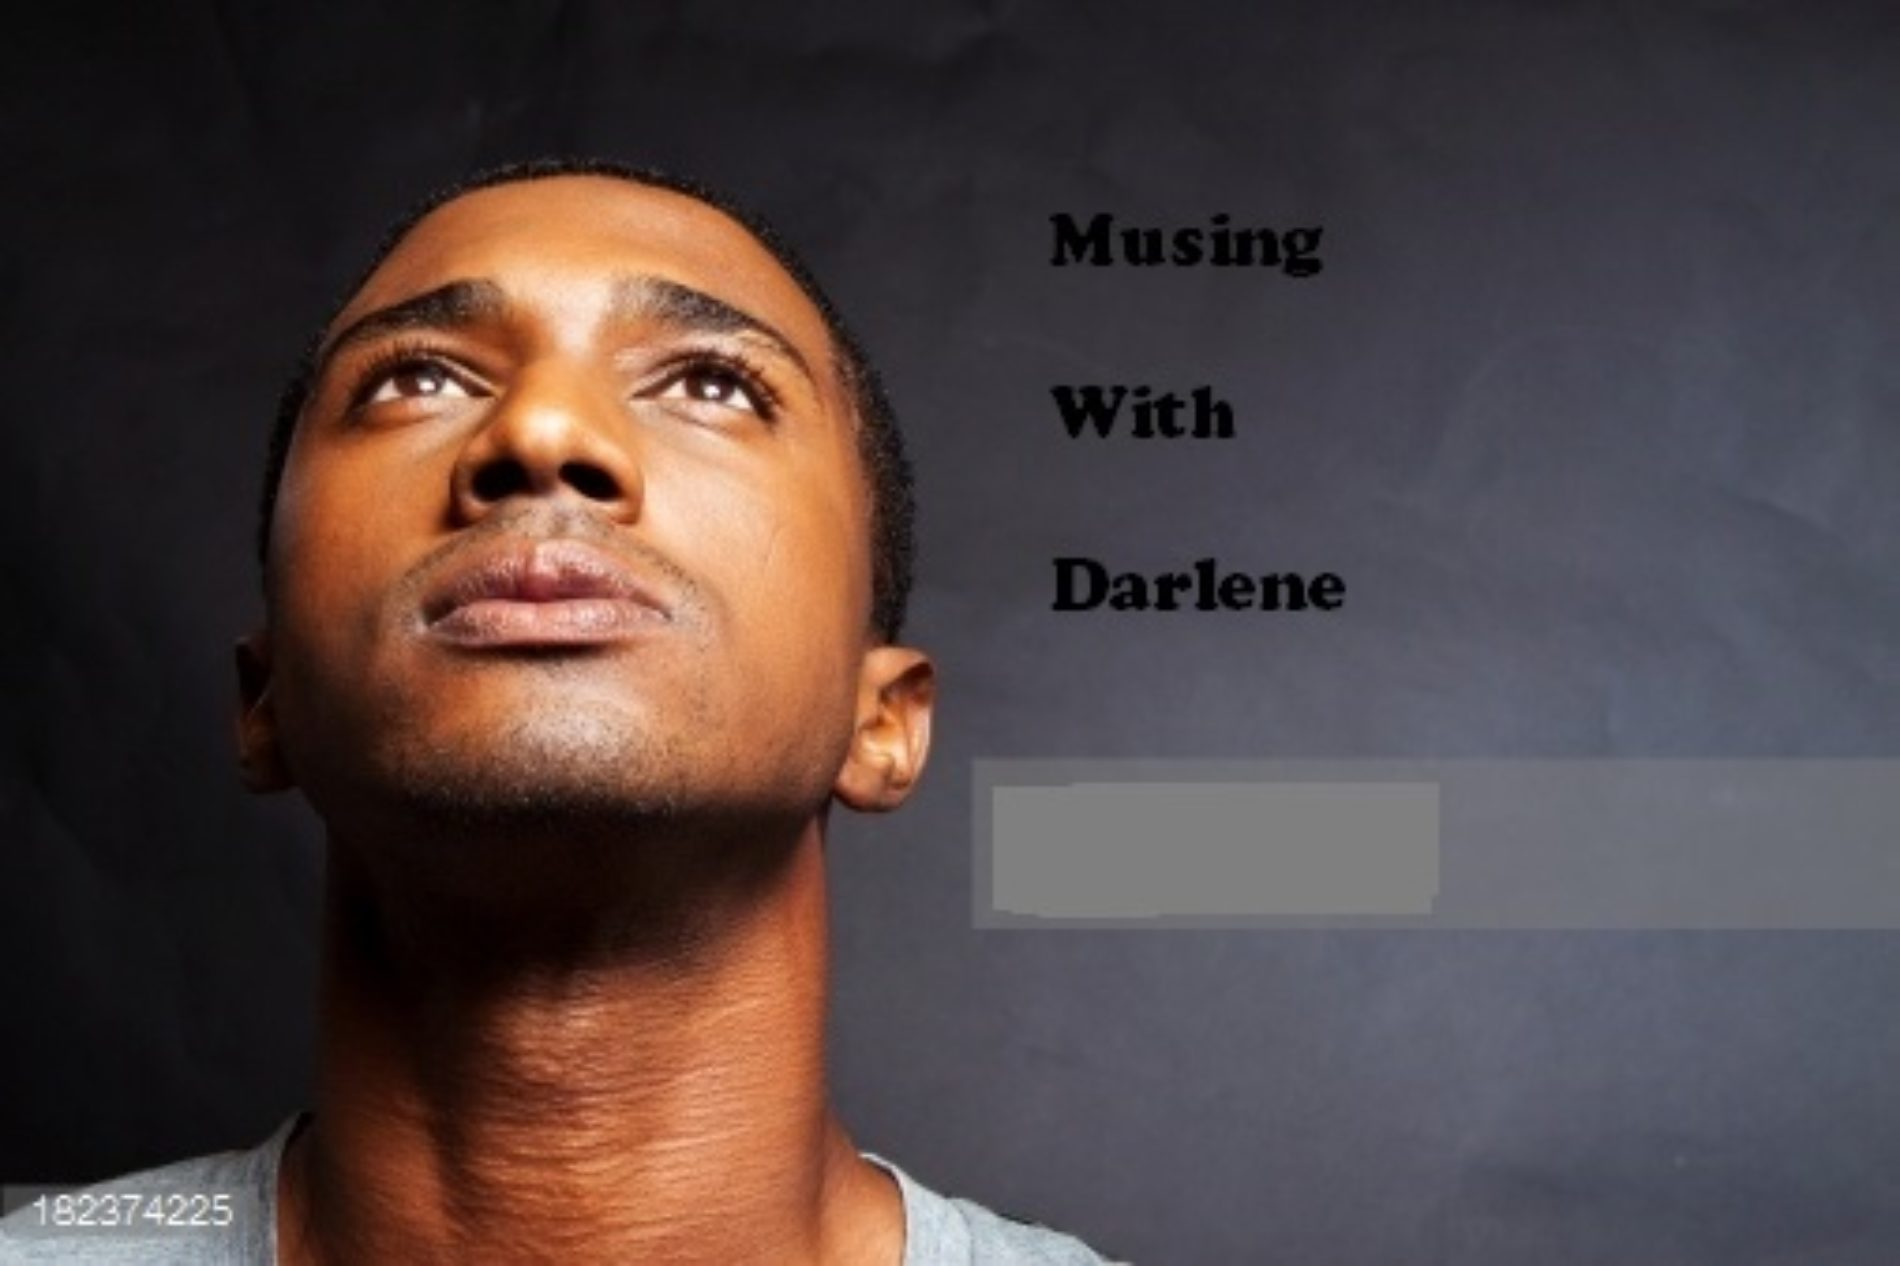 MUSING WITH DARLENE: THE CRUSH